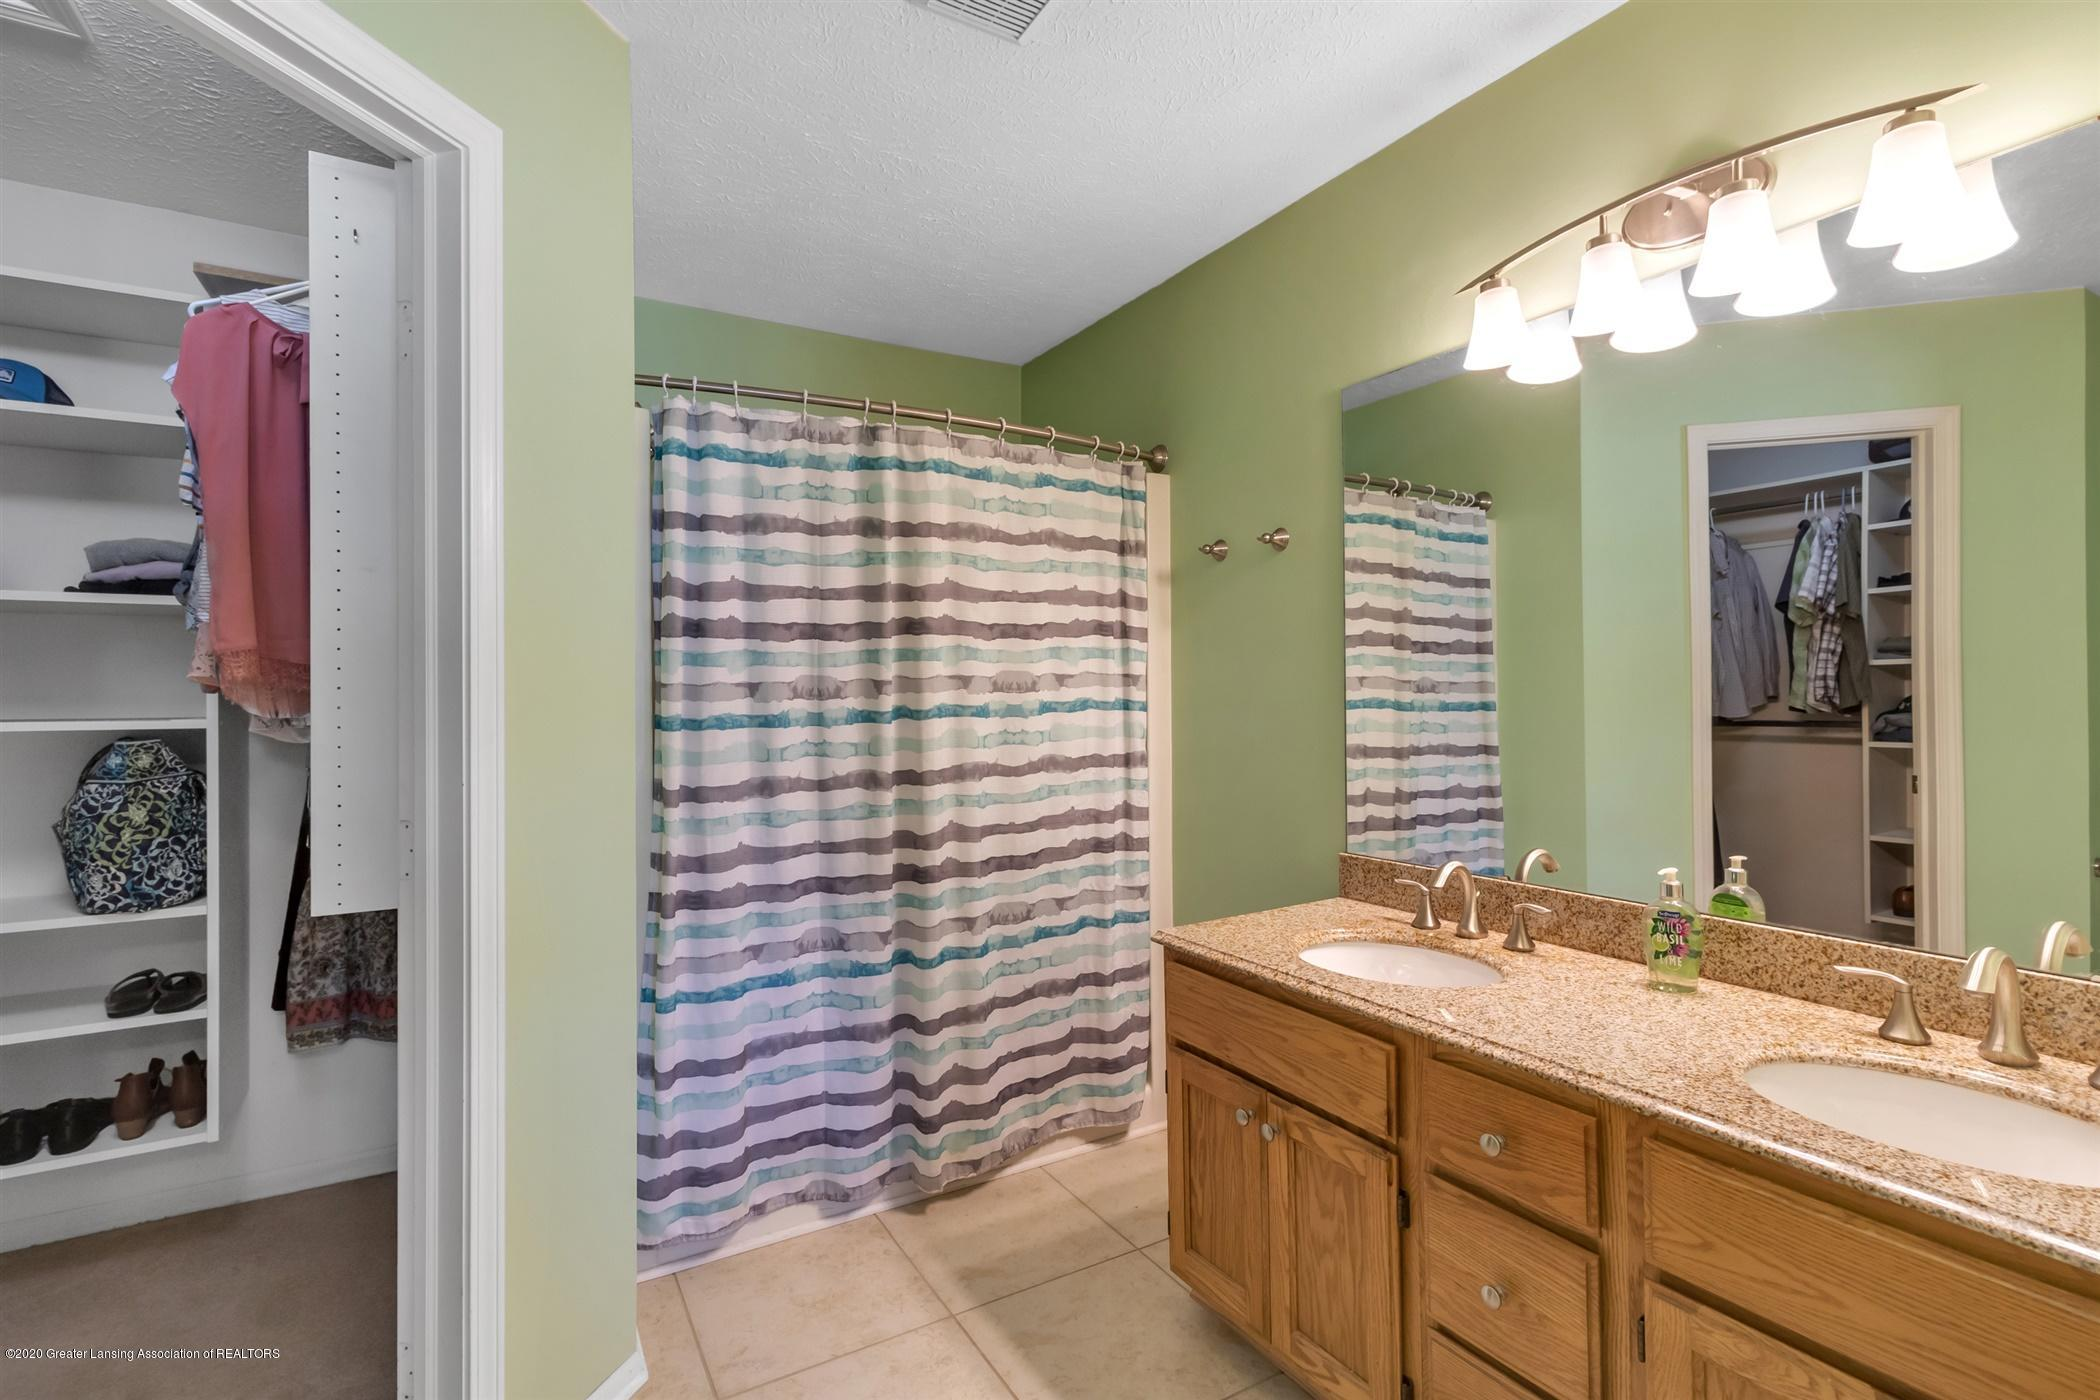 2945 Whistlewood Way - 27-2945Whistlewood-WindowStill-Real - 27